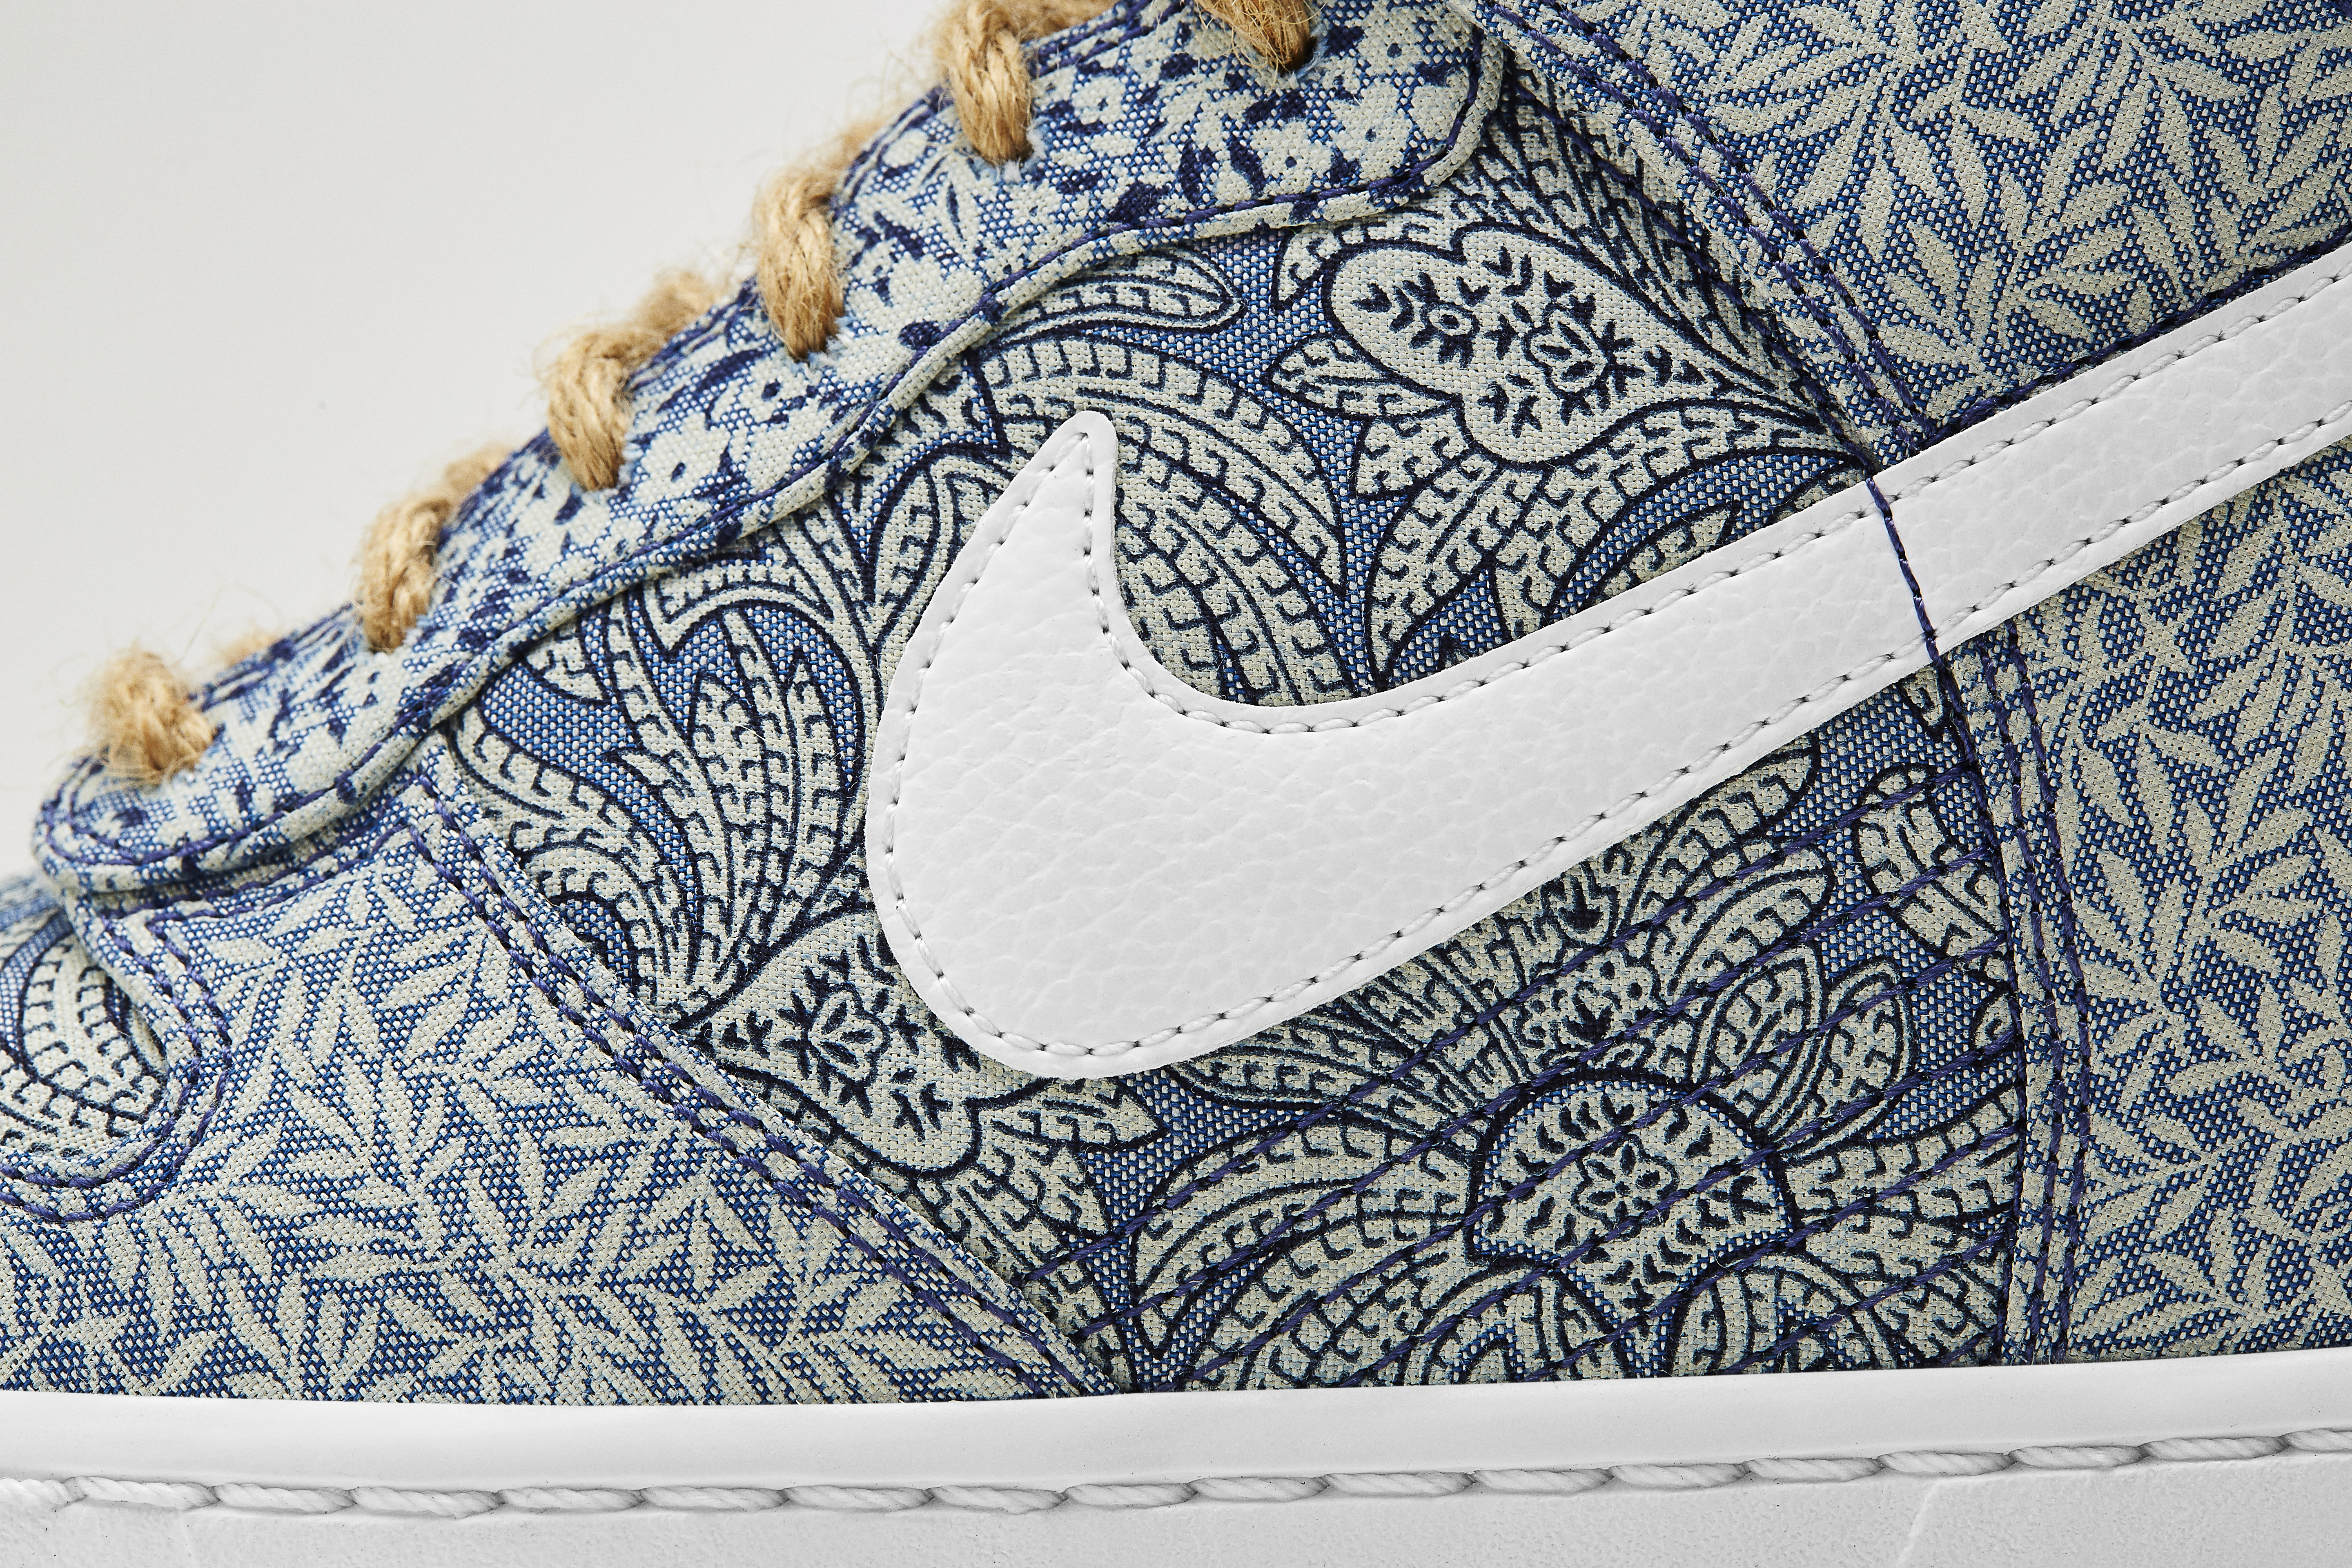 promo code 17ac4 331bf ... trainers LO · HI Nike Dunk Sky High Liberty Of London Denise Eva Now Available  Liberty x Nike WMNS Dunk Sky High Pink Force LIBERTY ...